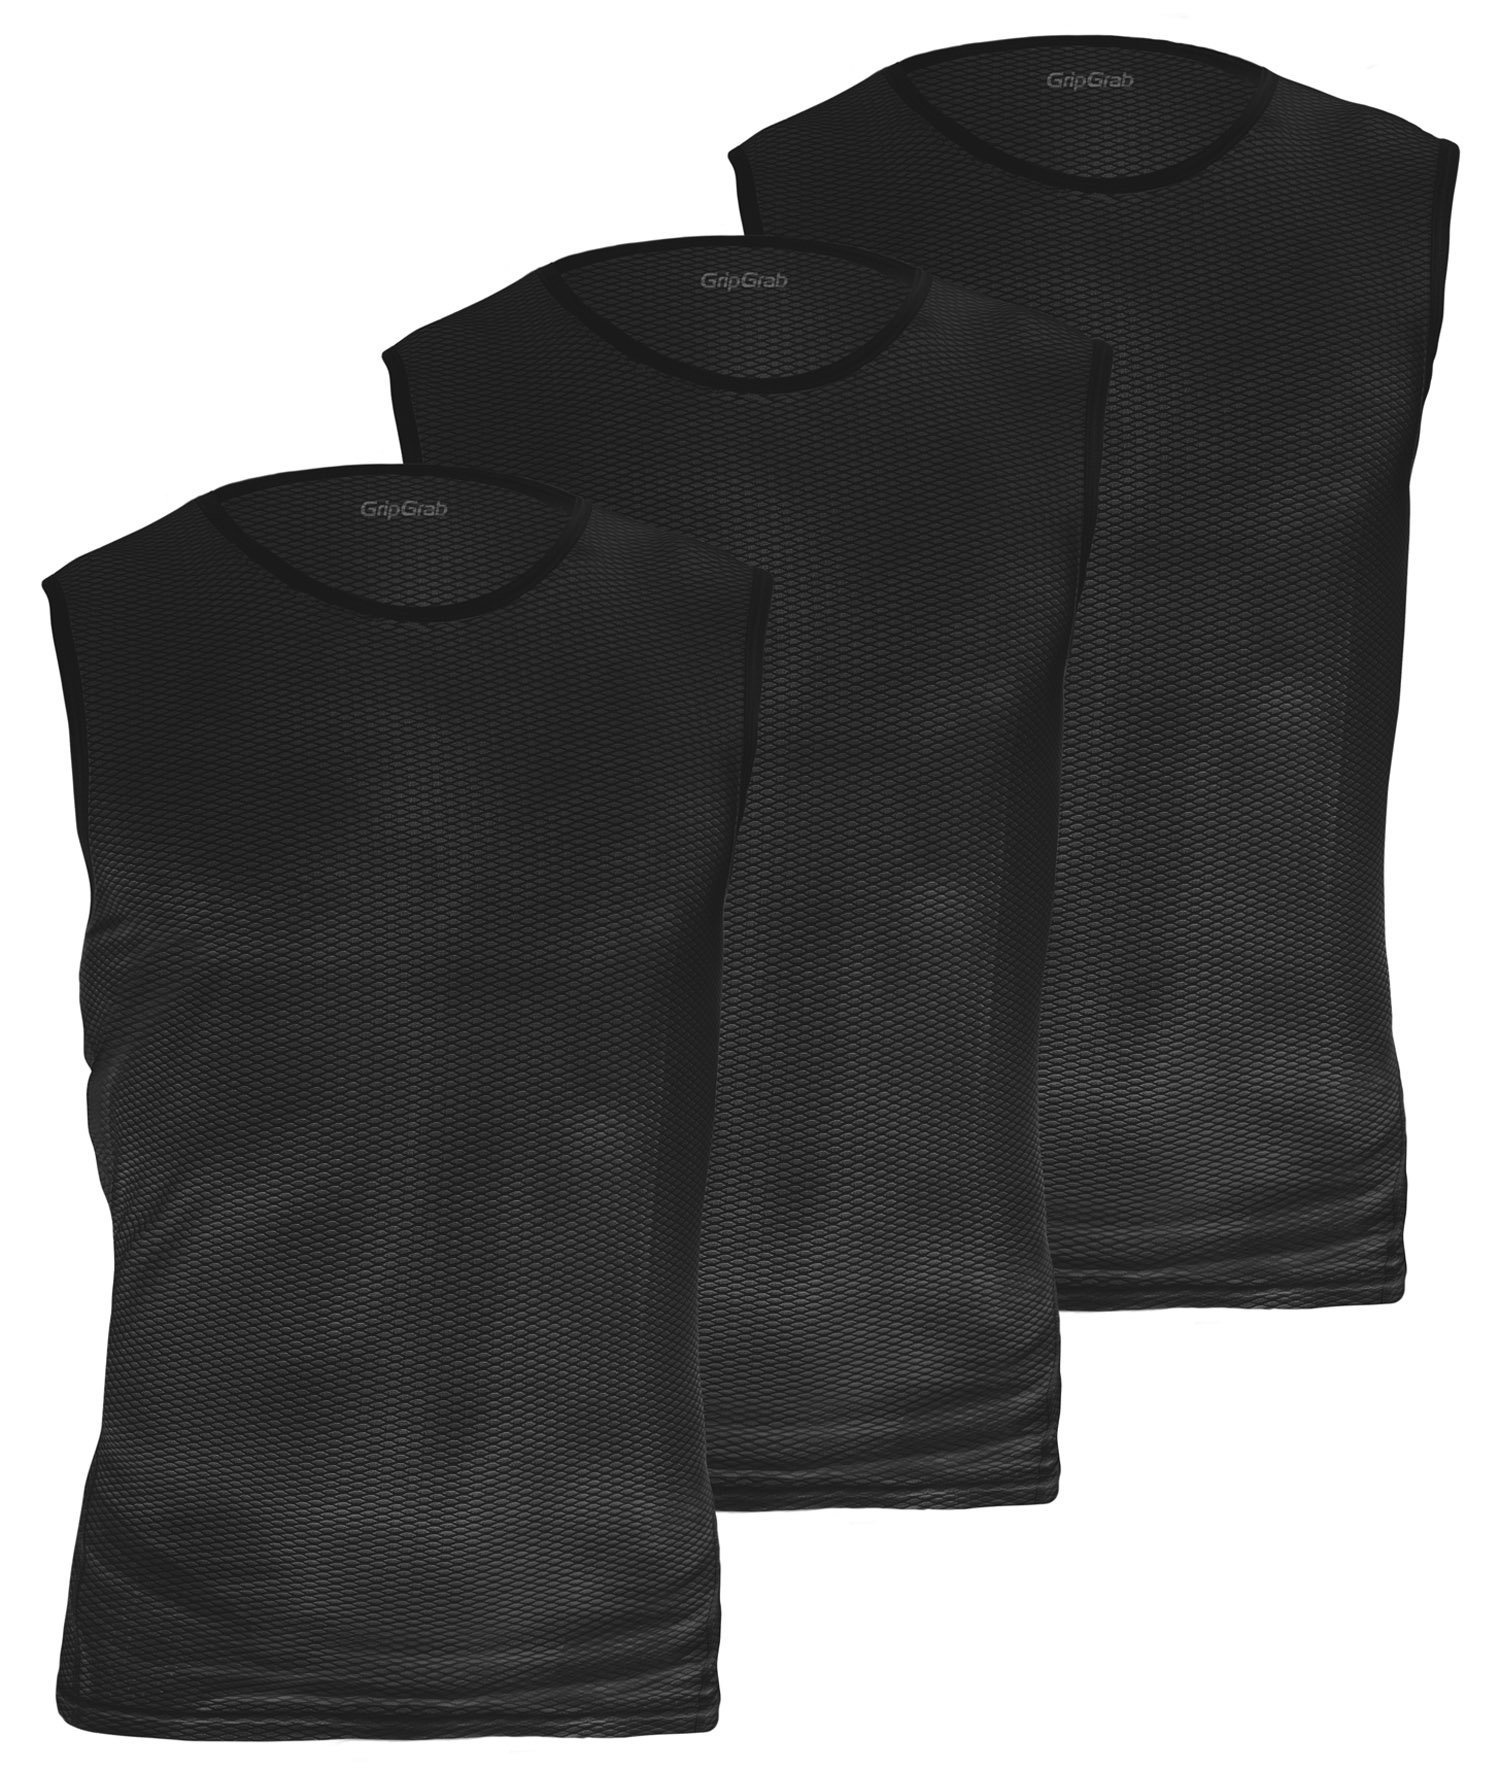 GripGrab Ultralight Ærmeløs Baselayer 3-Pak - Sort